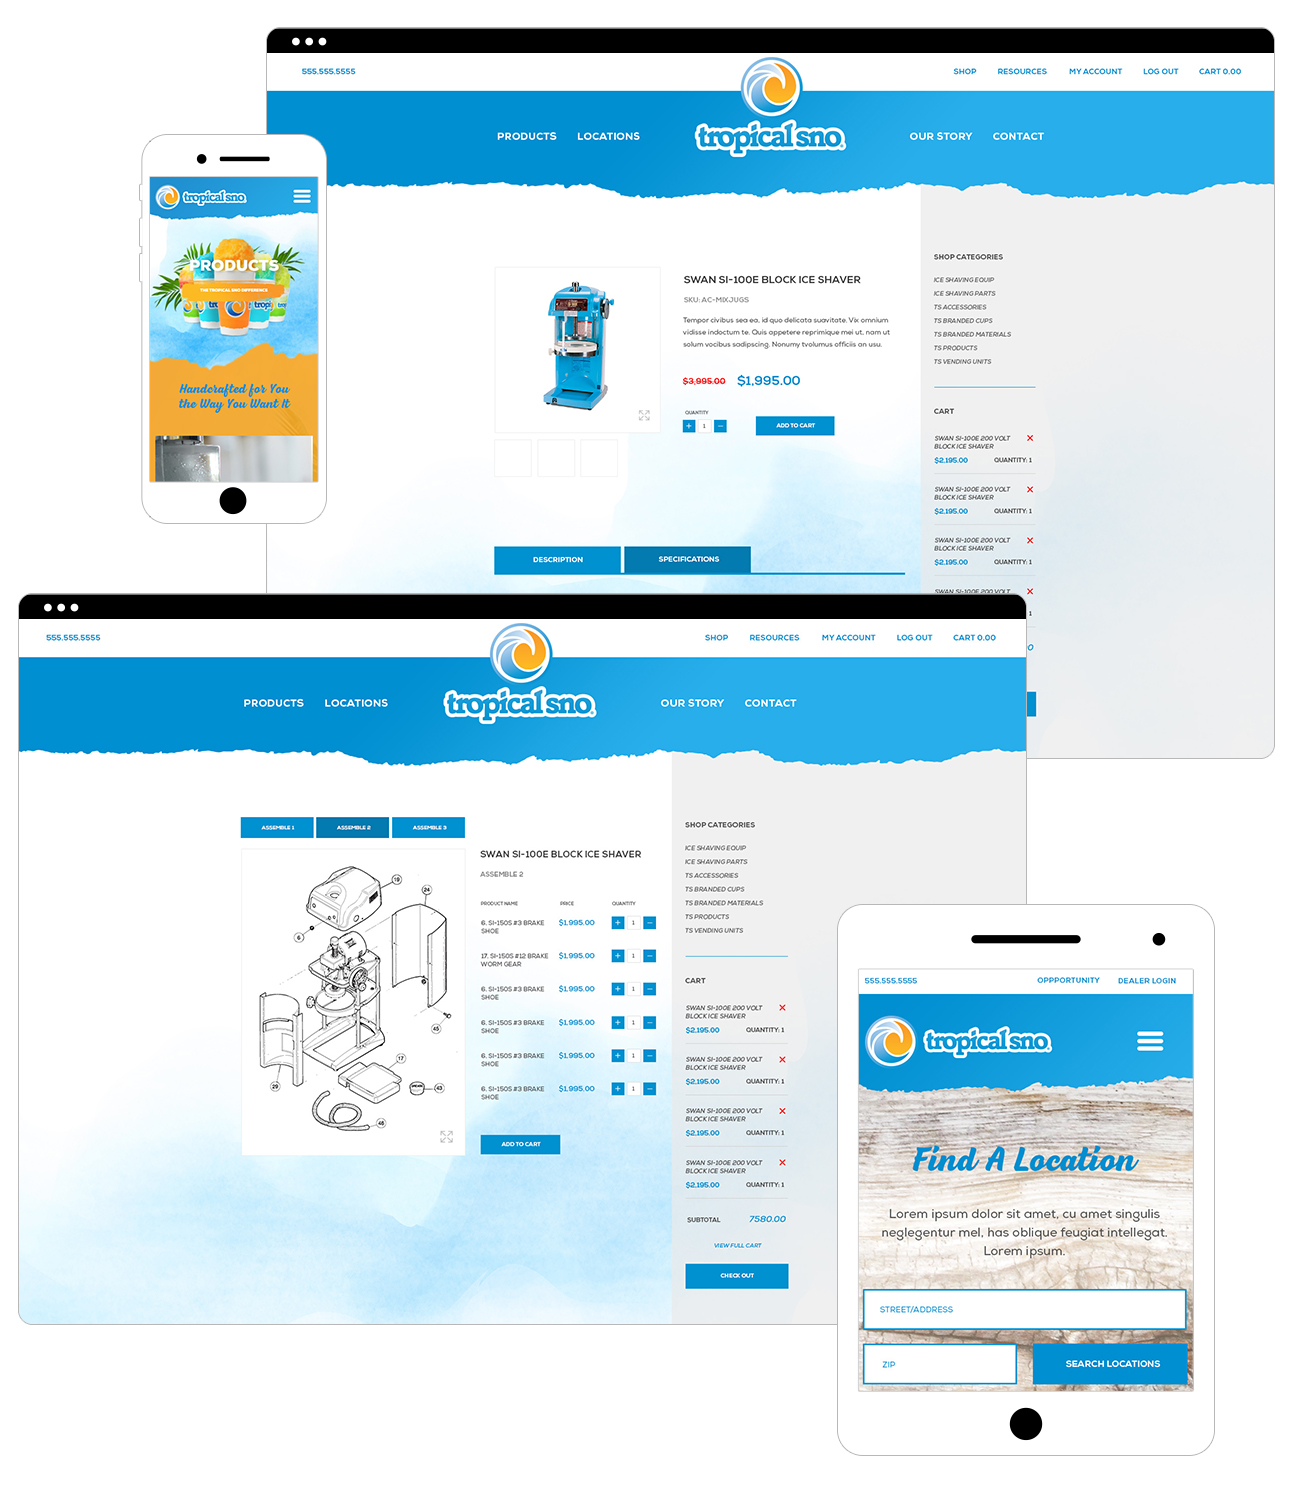 Tropical Sno Responsive Website Design By Alexander Hofstetter